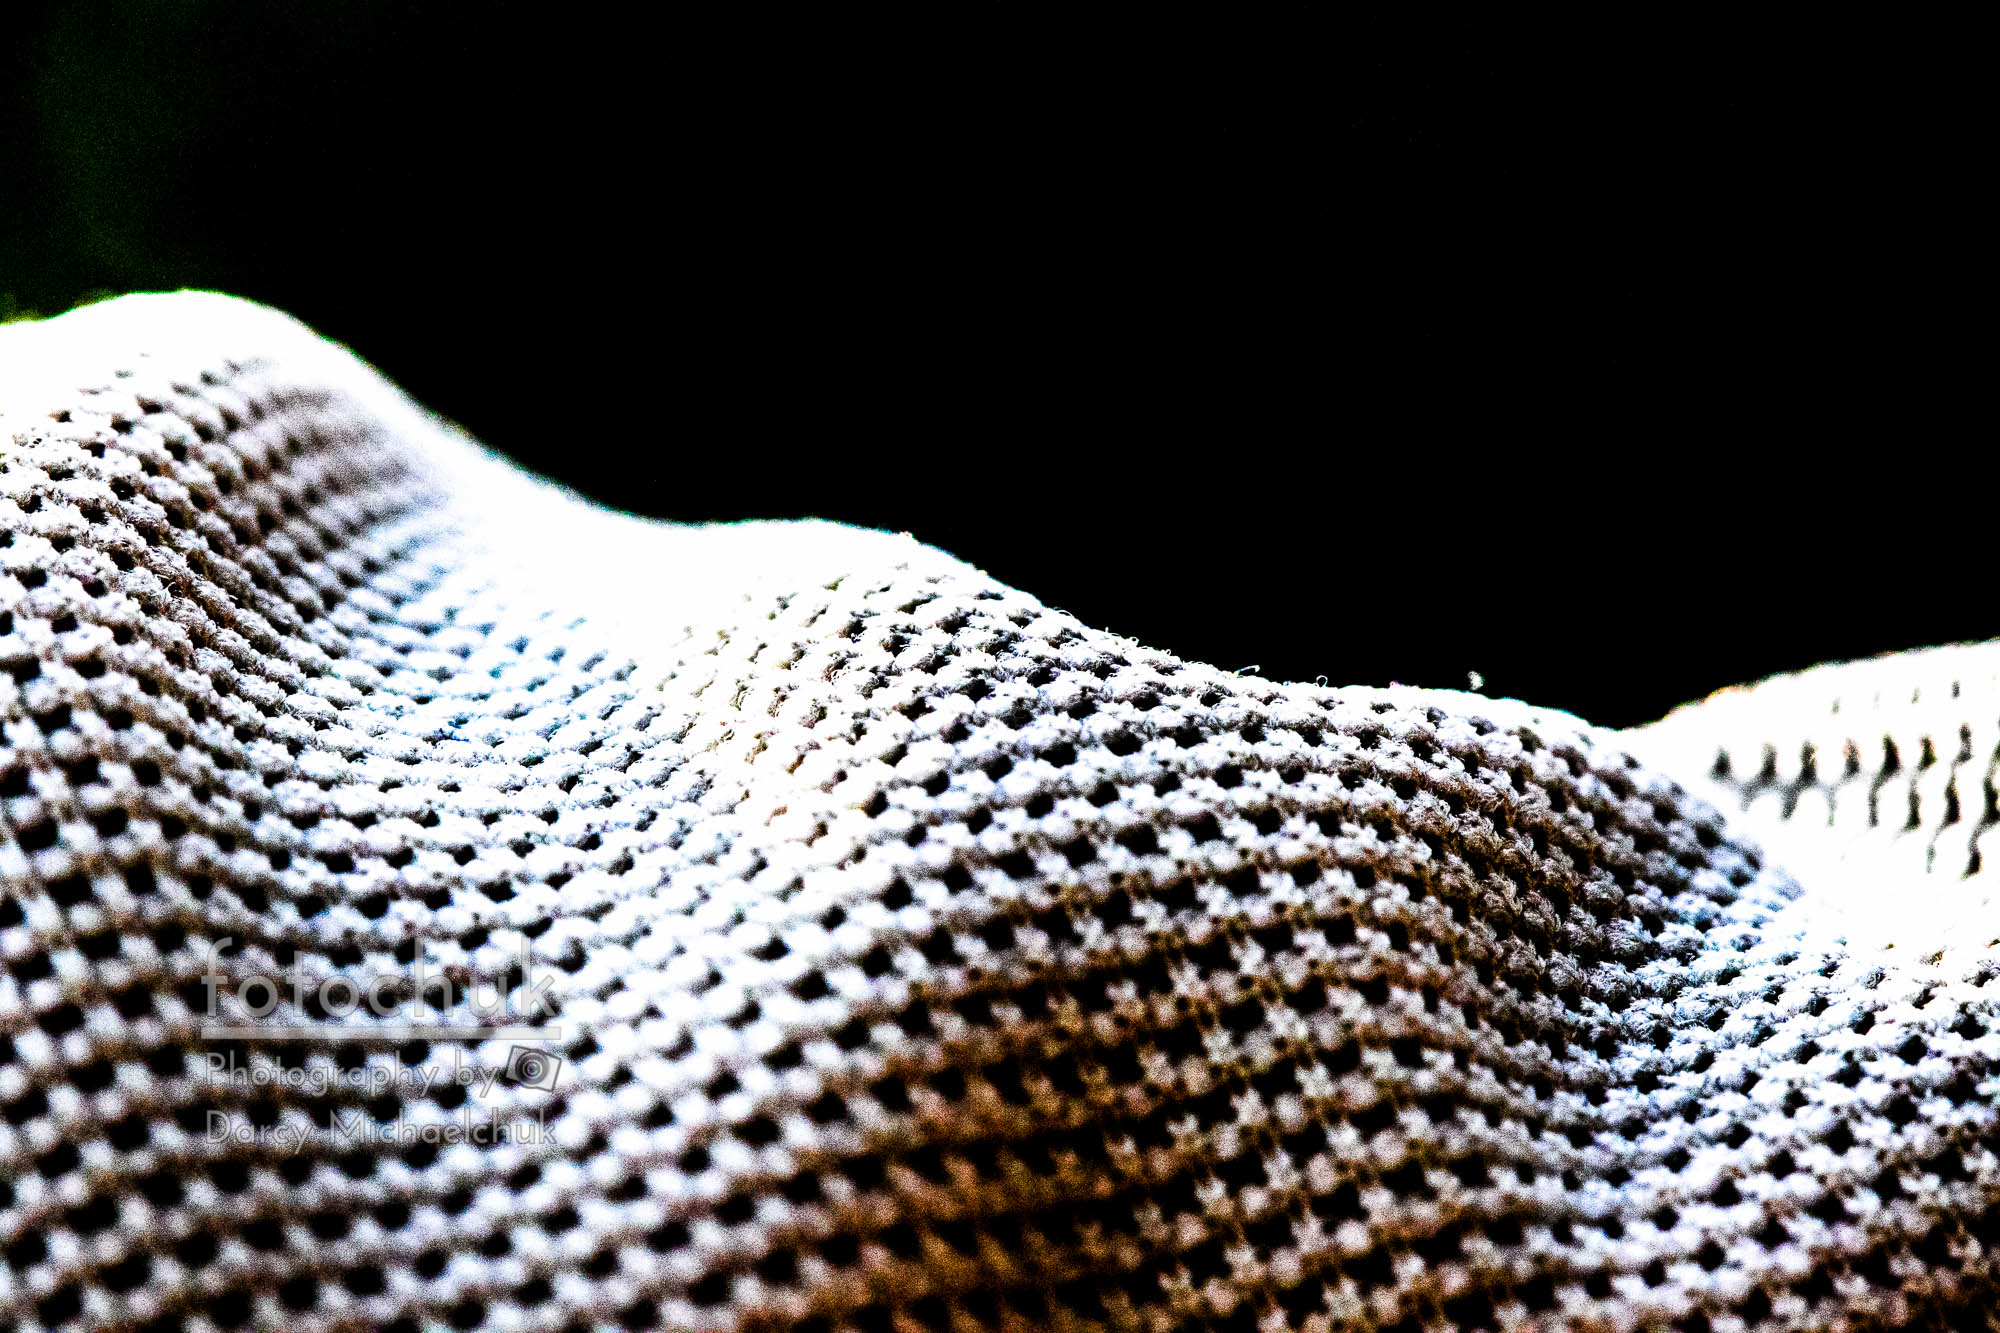 Shirt fabric in close and high contrast  by Darcy Michaelchuk